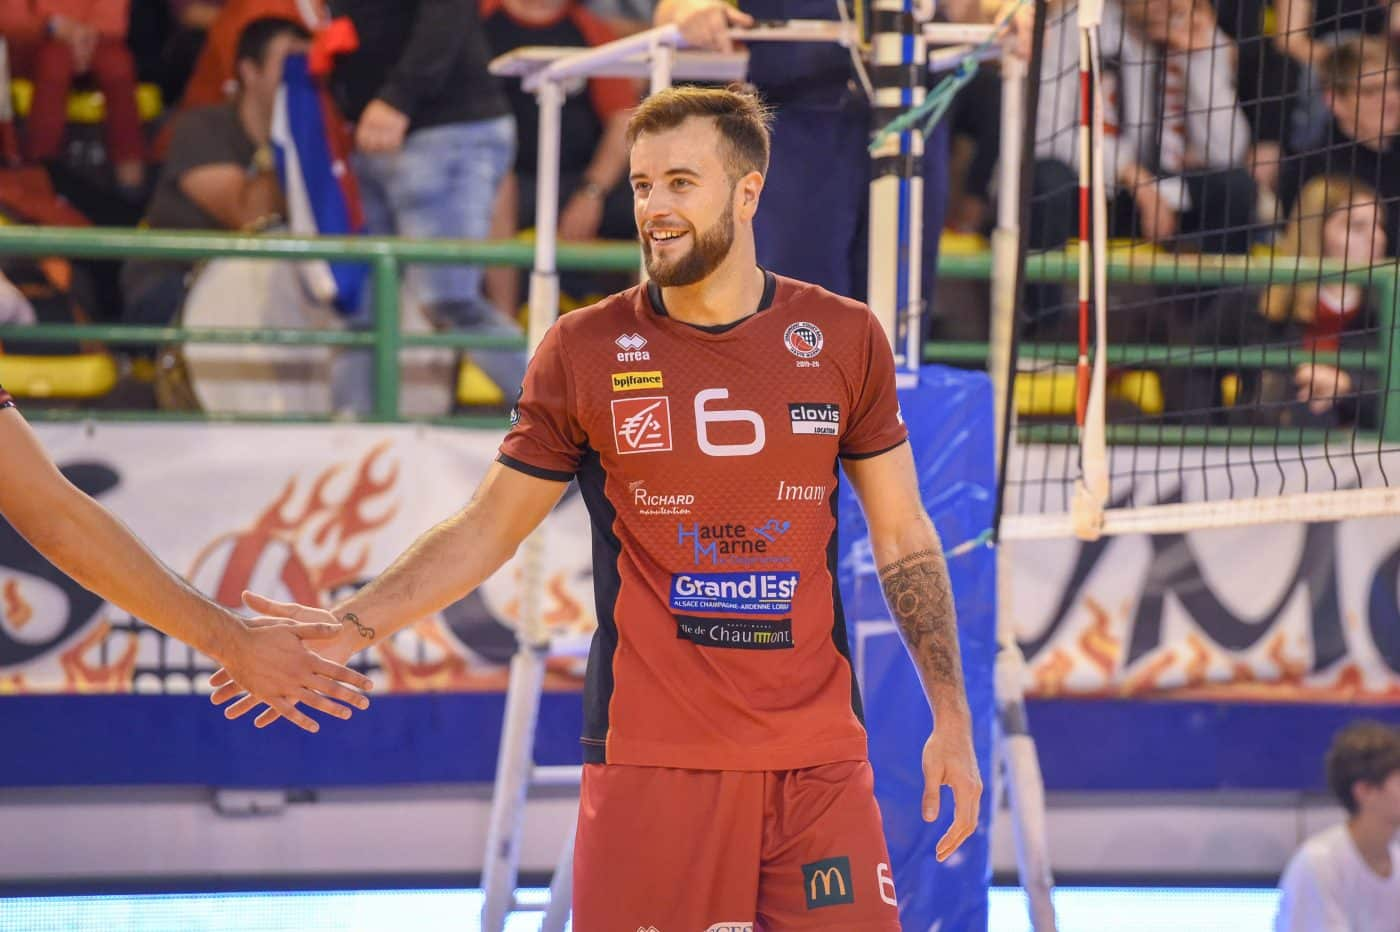 maillot-volley-LAM-2019-2020-chaumont-errea-2